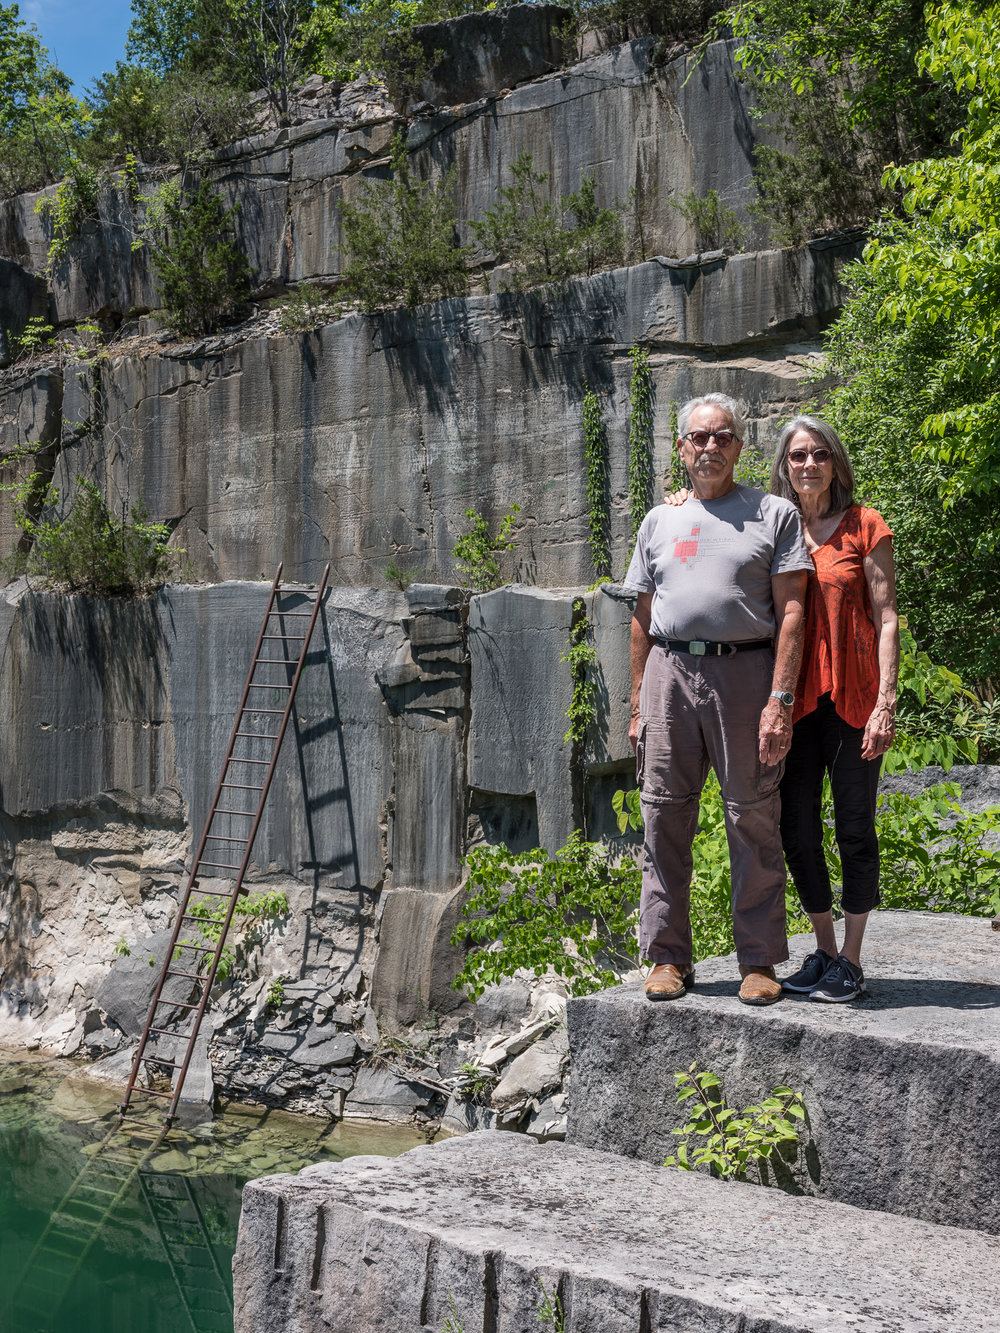 Duncan and Cathy at the Furst Quarry, Bloomington, Indiana, 2018